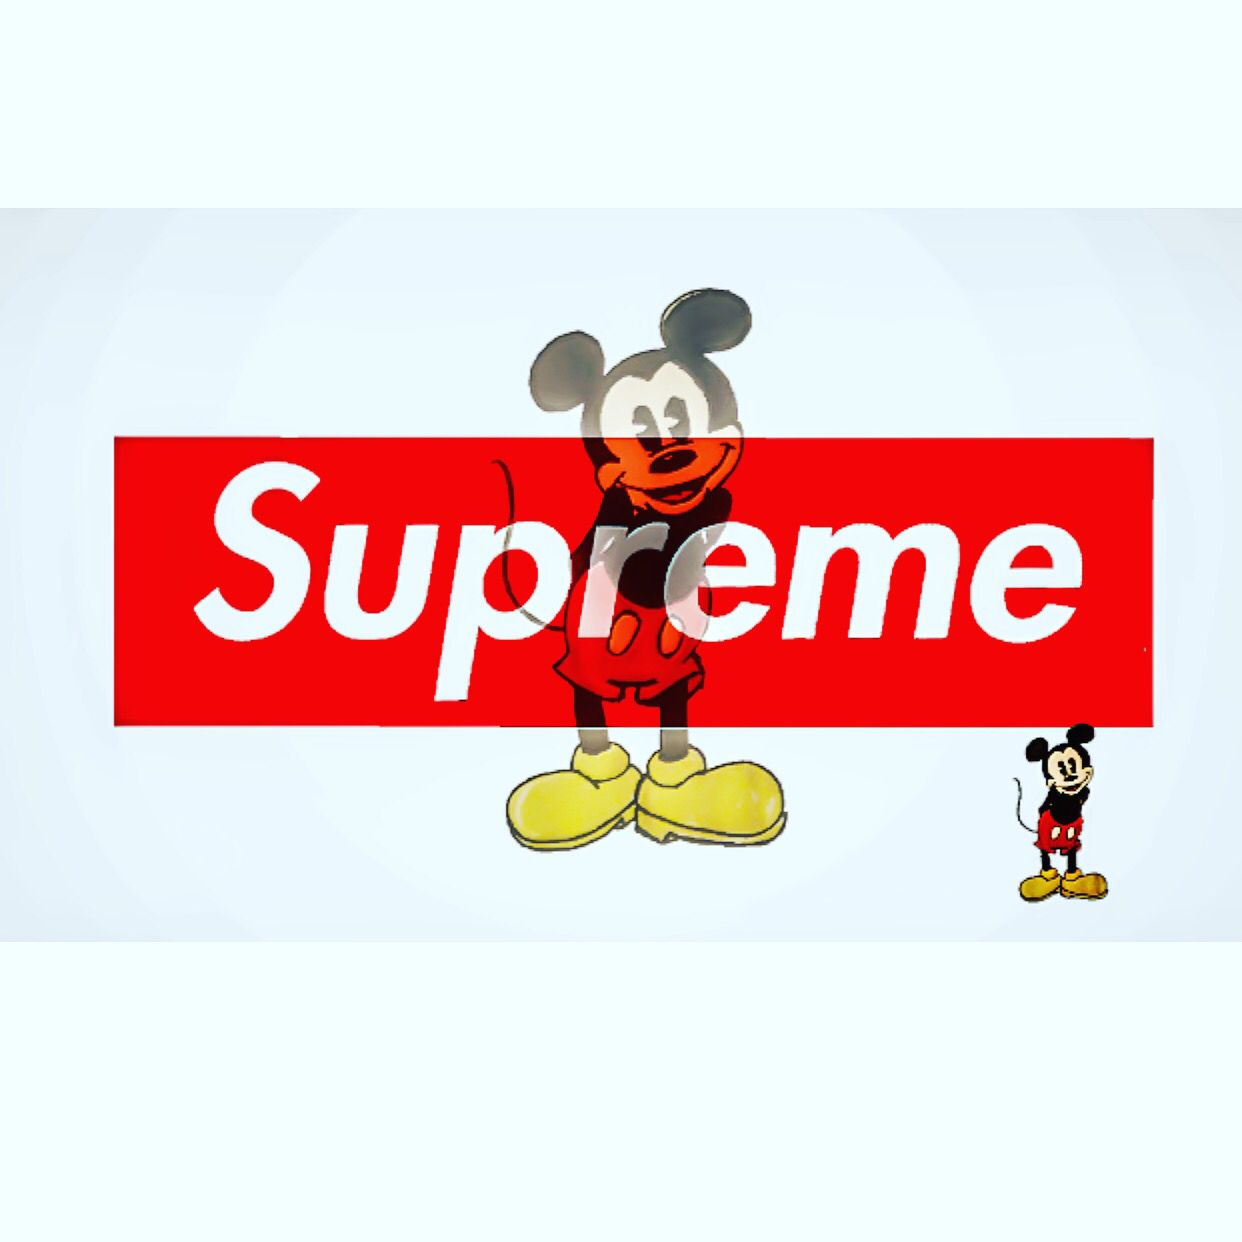 SUPREME x MICKEY MOUSE Supreme, Logos